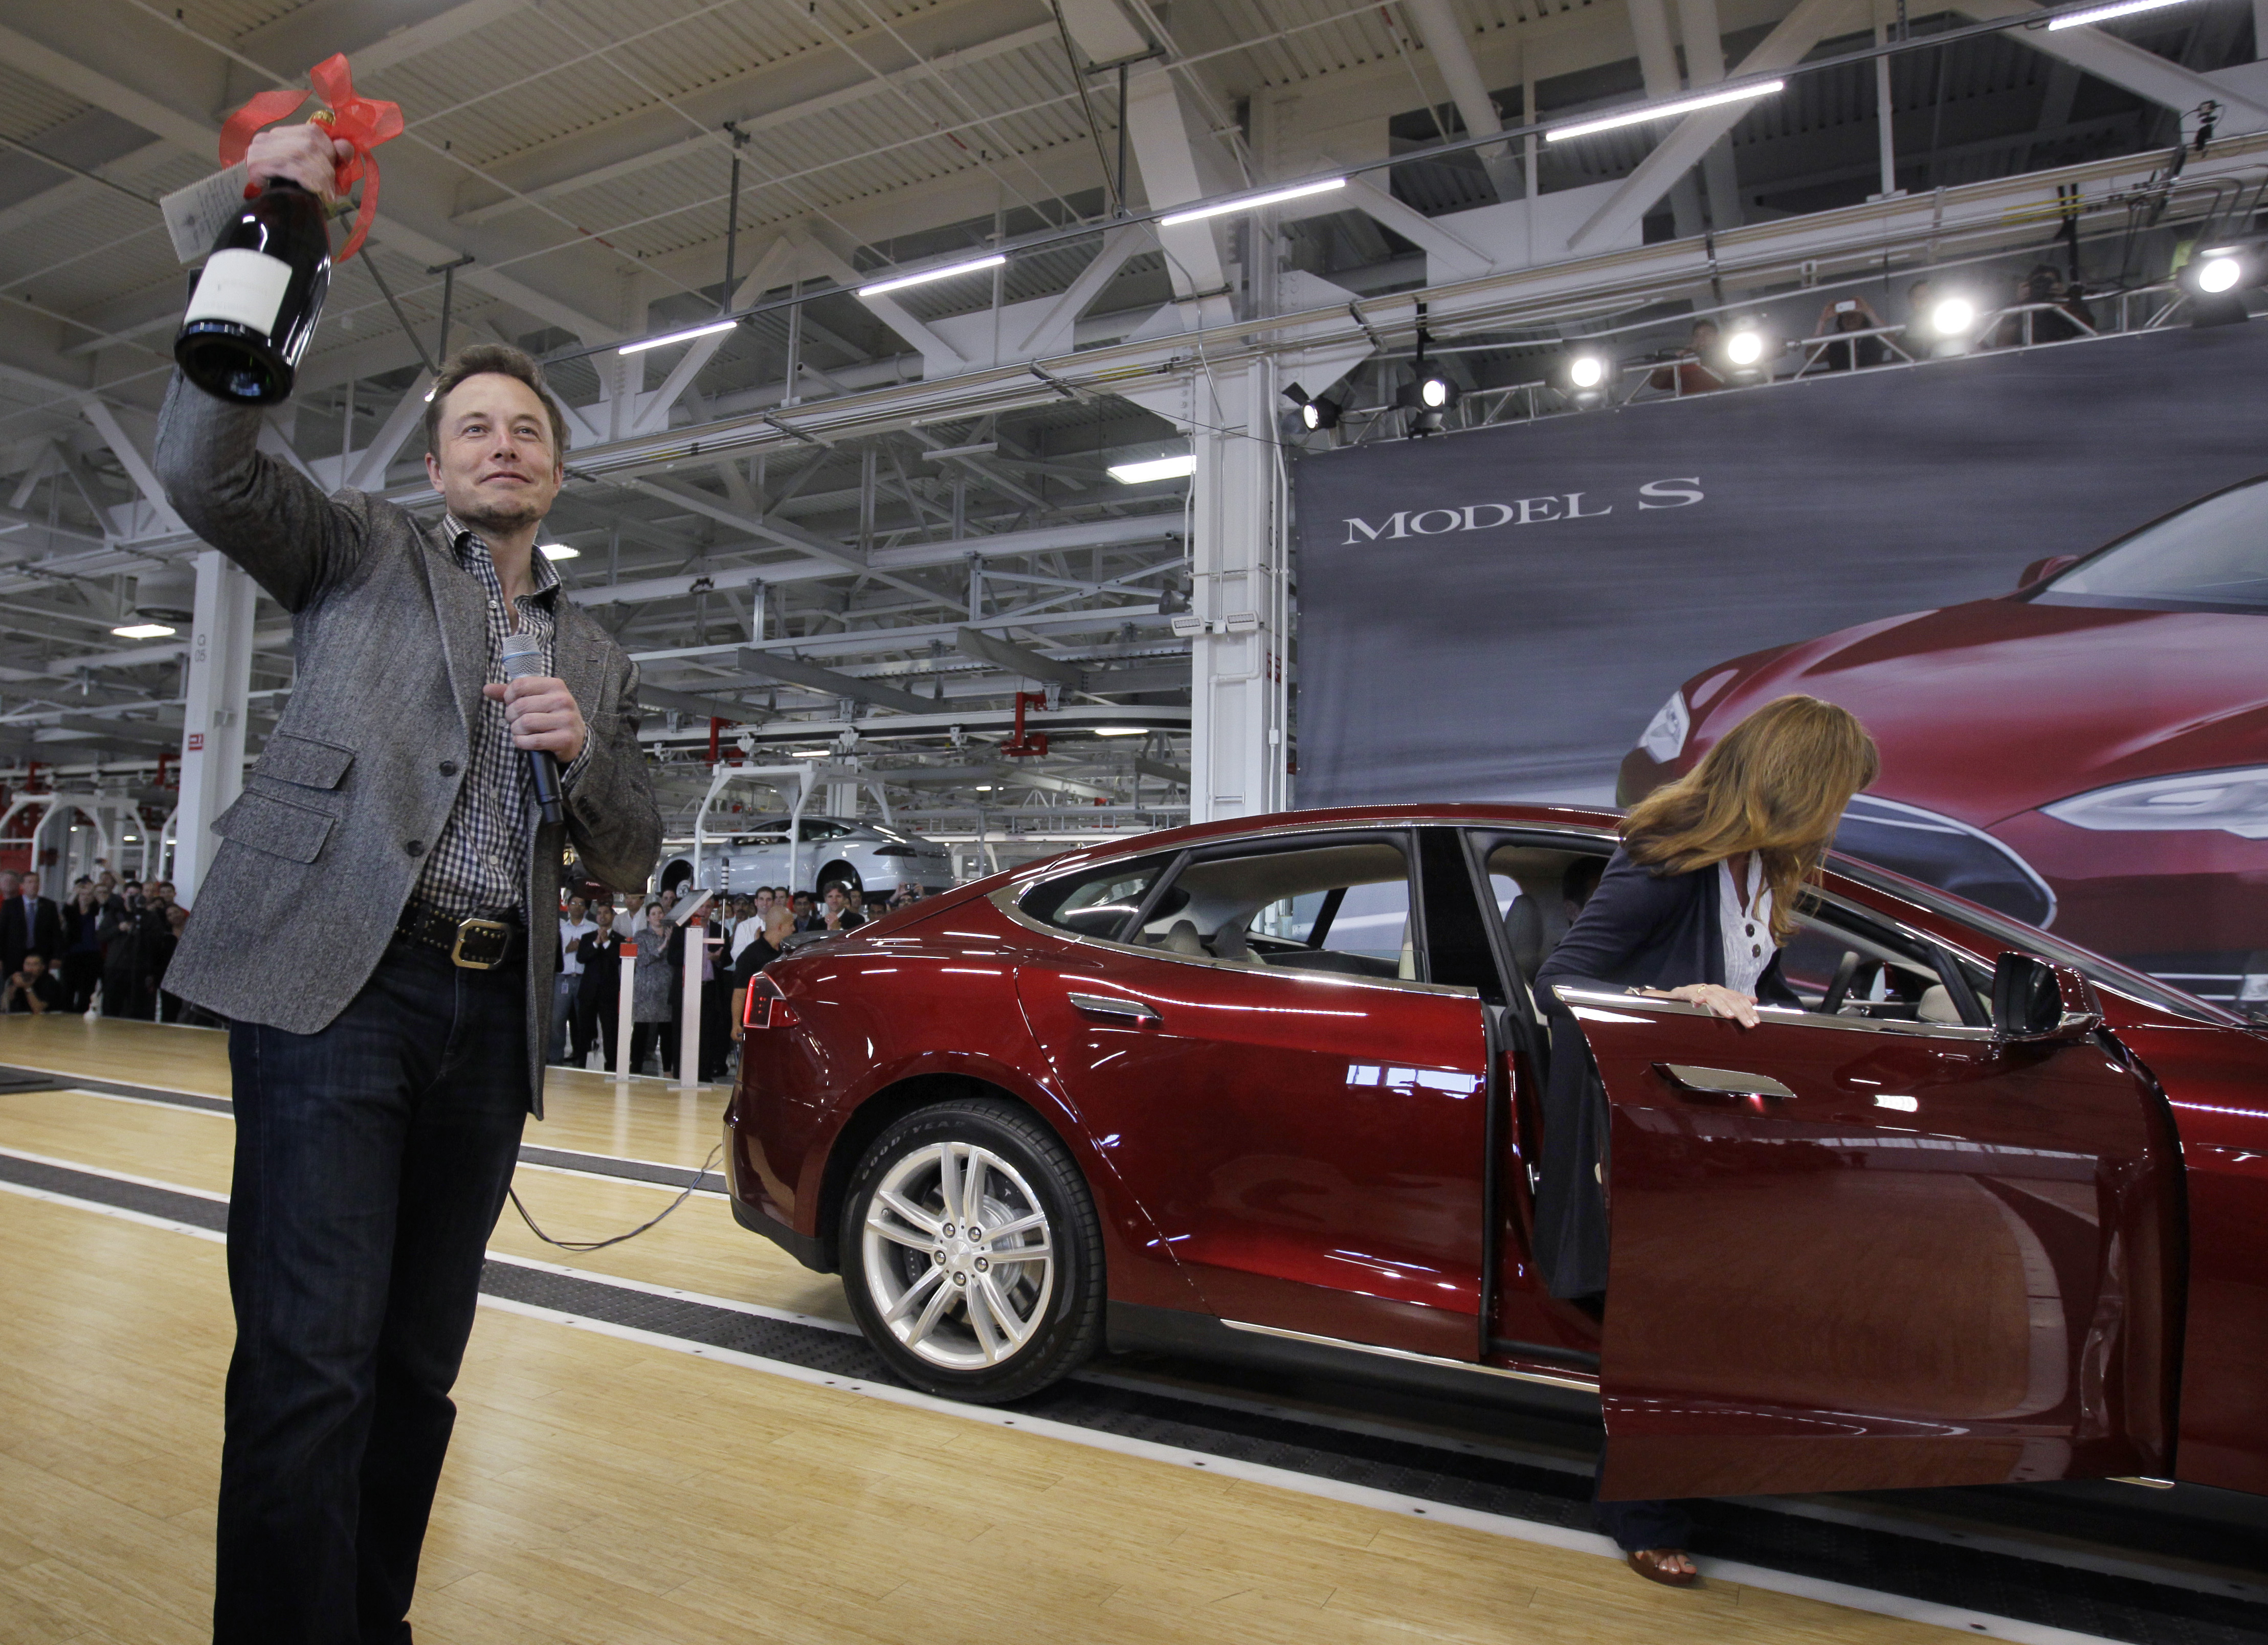 In this June 22, 2012 file photo, Tesla Motors Inc. CEO Elon Musk holds up a bottle of wine given as a gift from one of their first customers, right, during a rally at the Tesla factory in Fremont, Calif. Tesla Motors Inc. on Wednesday, July 25, 2012 said that its second-quarter net loss nearly doubled as it invested heavily to launch its second vehicle, the Model S. (AP Photo/Paul Sakuma, File)